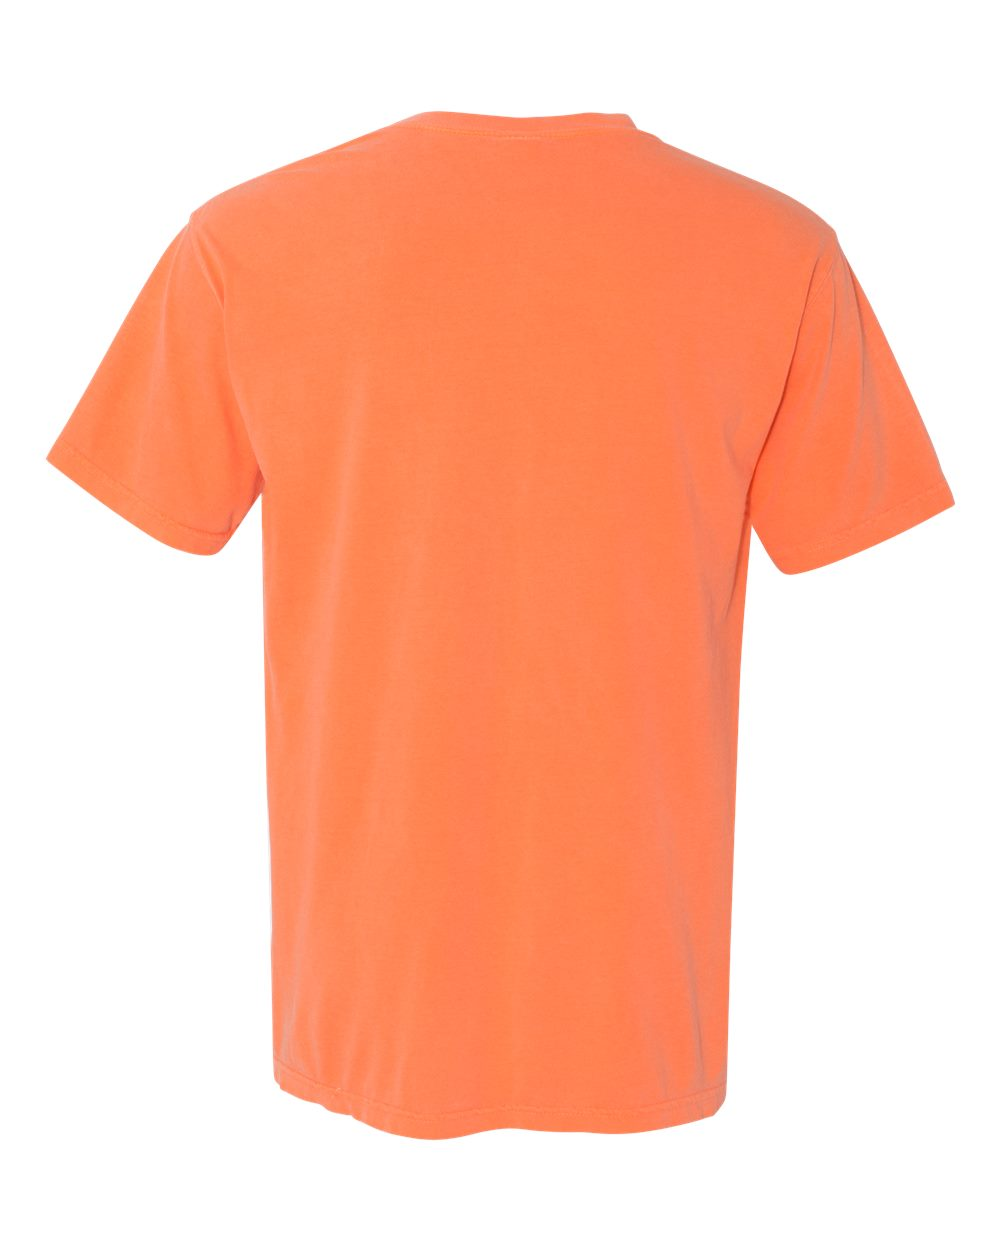 Comfort-Colors-Men-039-s-6-1-oz-Garment-Dyed-Pocket-T-Shirt-6030CC-S-3XL thumbnail 58